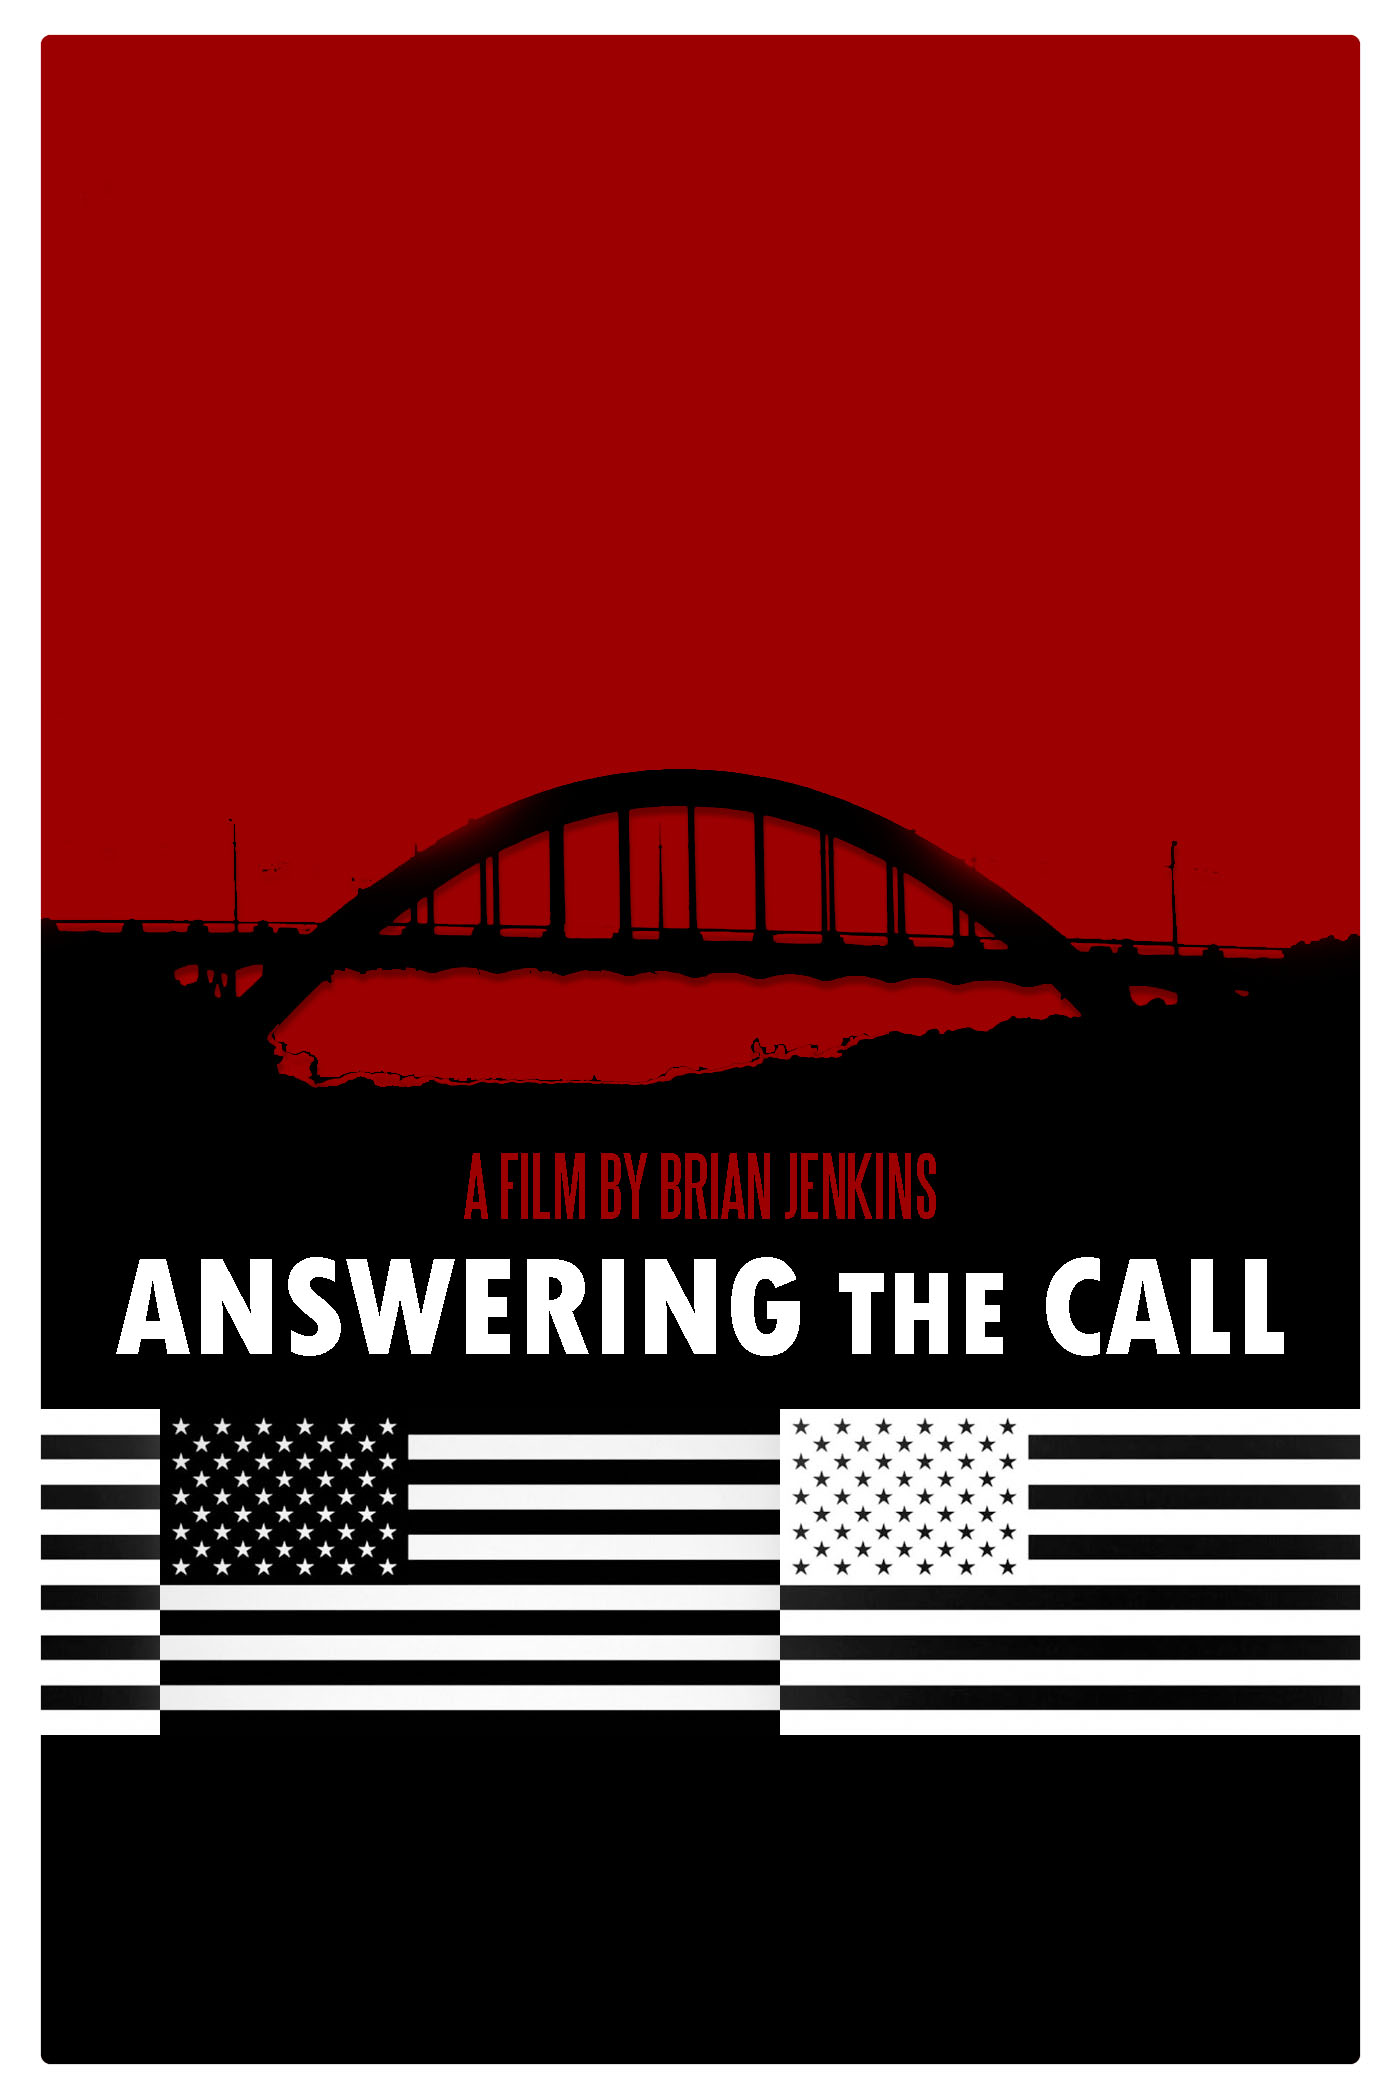 answering-the-call-digital-poster